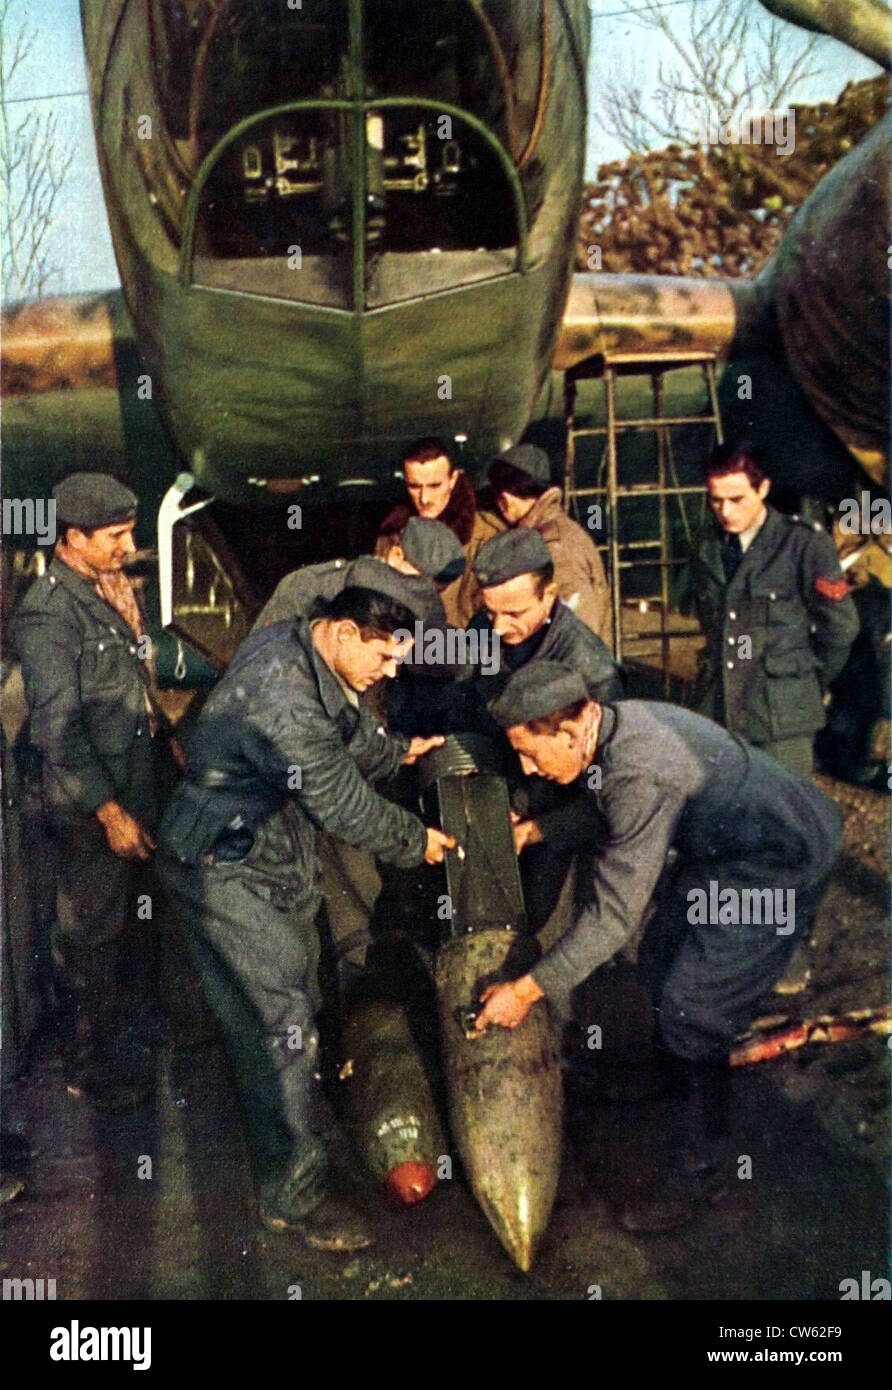 World War II.  Italian fighters on the Channel coasts, in 'Signal', February 1941. - Stock Image